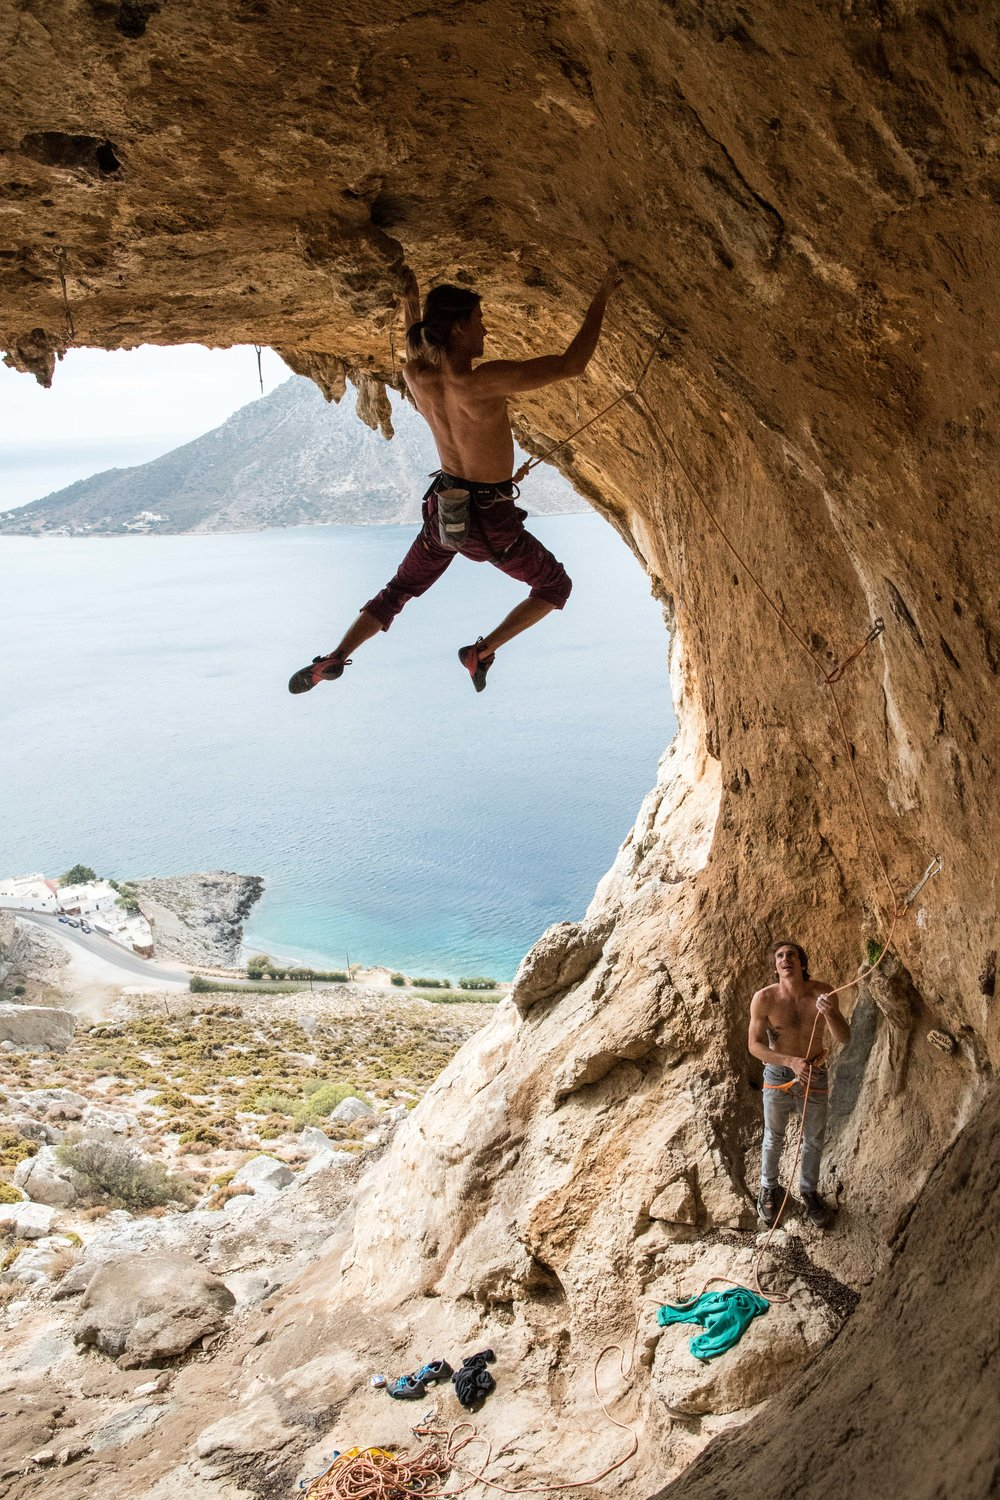 October, I had the opportunity to participate in the kalymnos climbing festival in Greece with Evolv. Thanks Danial for the catch!